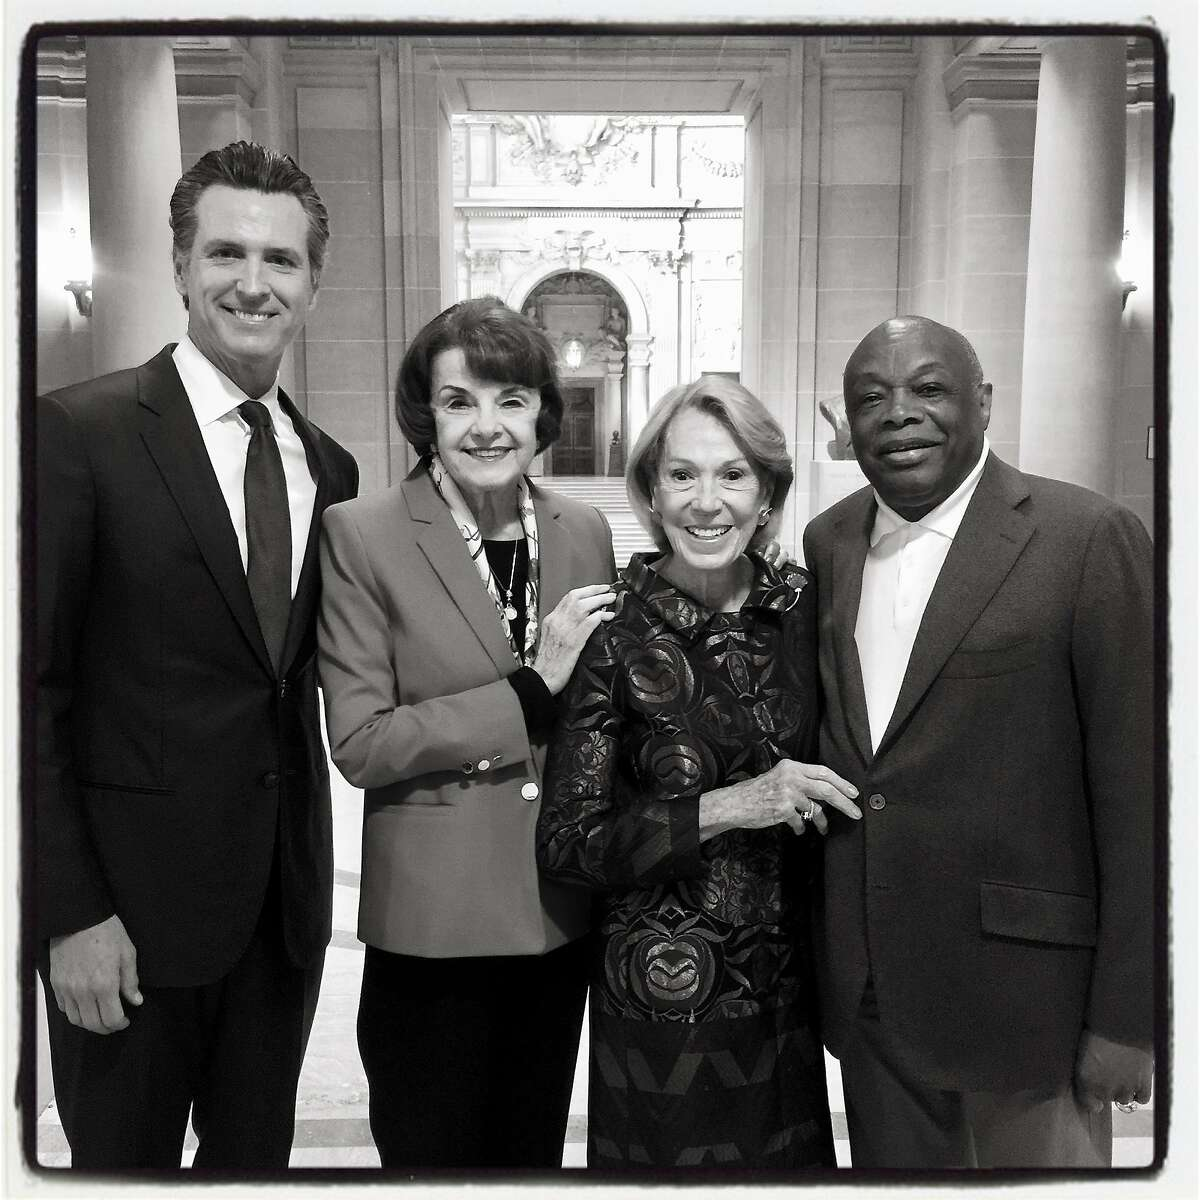 SF's Mt. Rushmore pays tribute to late Mayor Ed Lee, from left: Lt. Gov. Gavin Newsom, Sen. Dianne Feinstein, Protocol Chief Charlotte Shultz and Da Mayor Willie Brown. May 5, 2018.